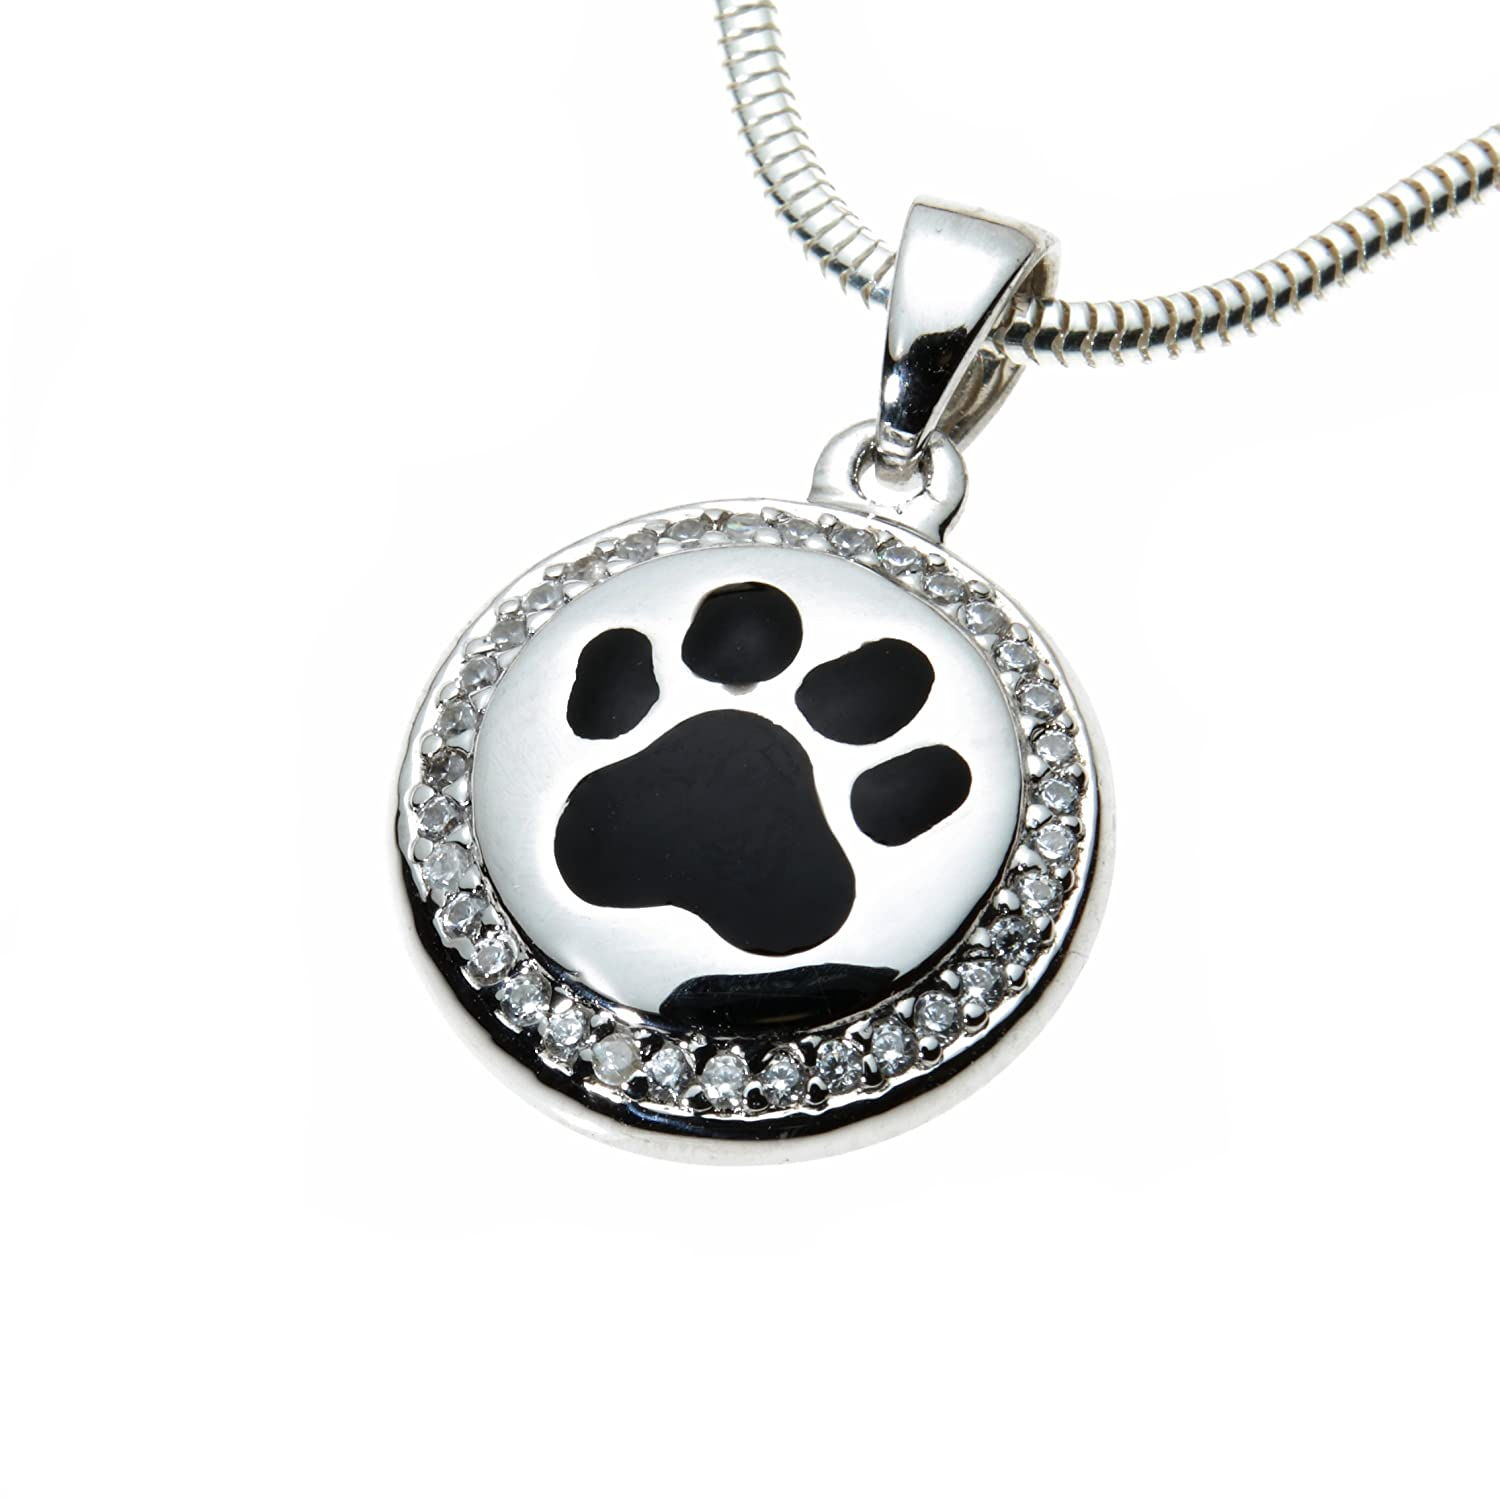 Urns UK Cremation Ashes Jewellery Pendant Belgravia Design 15, Sterling Silver UU610066A